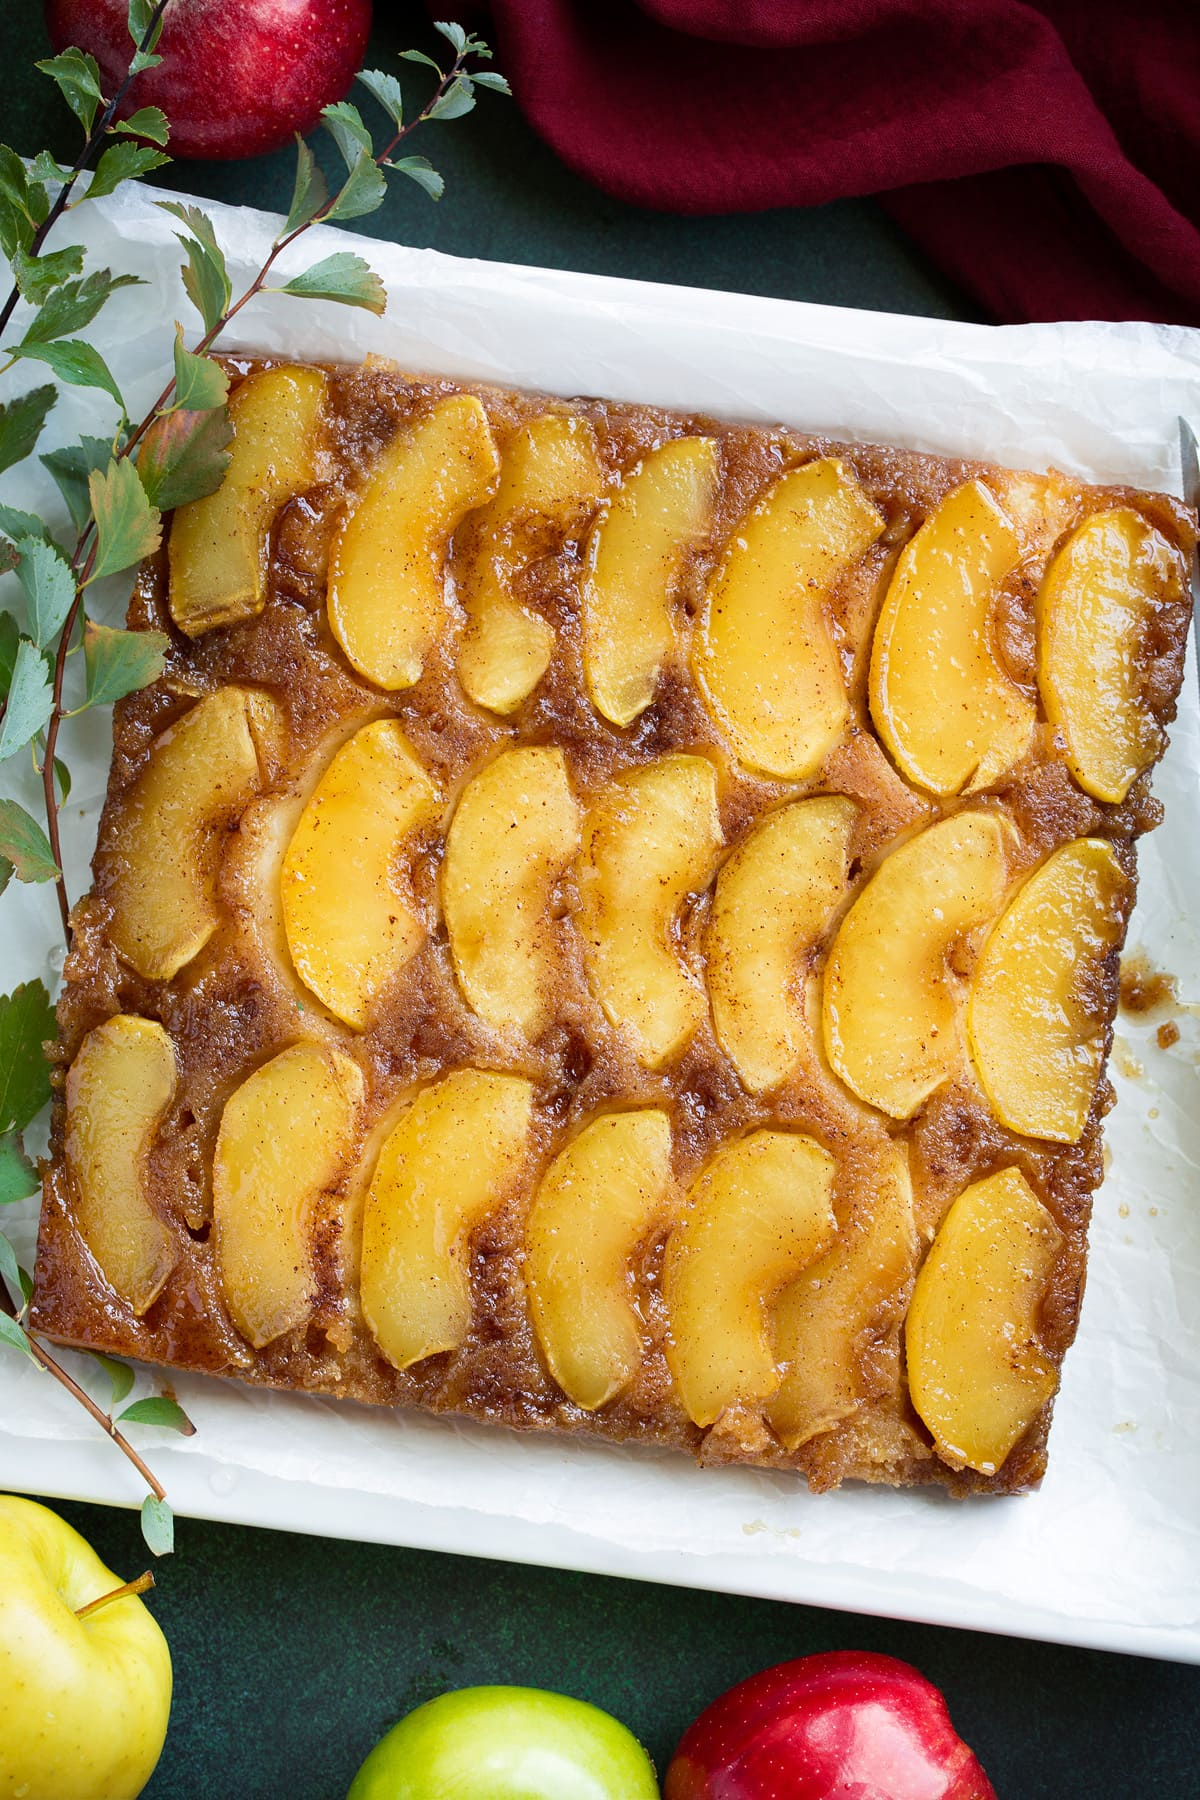 Apple upside down cake with rows of apple slices shown on top.